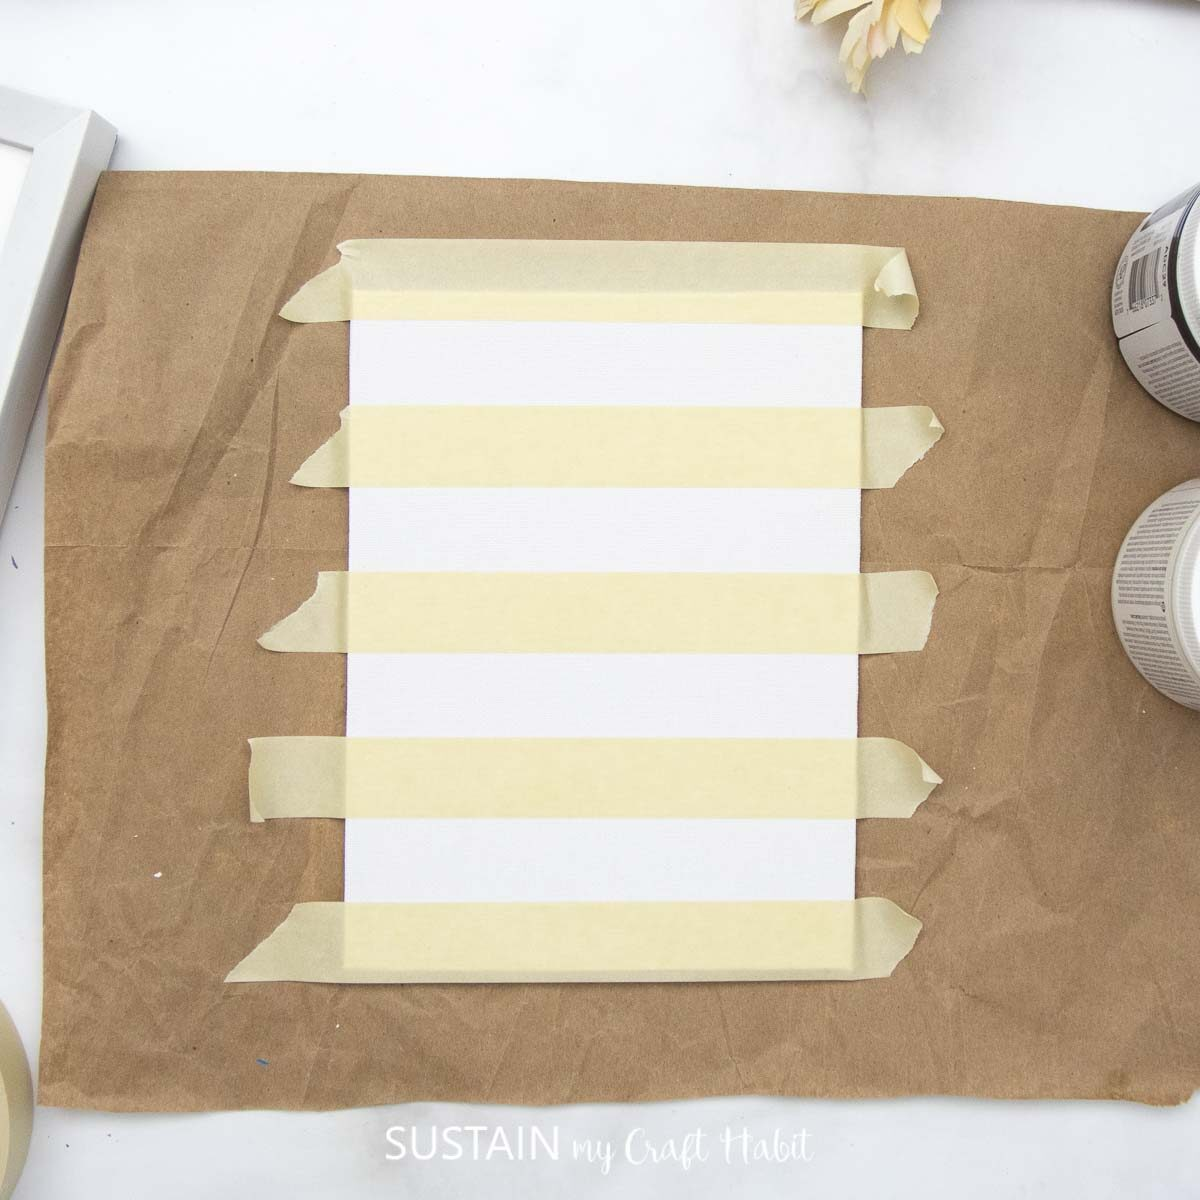 Adding painters tape horizontally on a piece of paper.